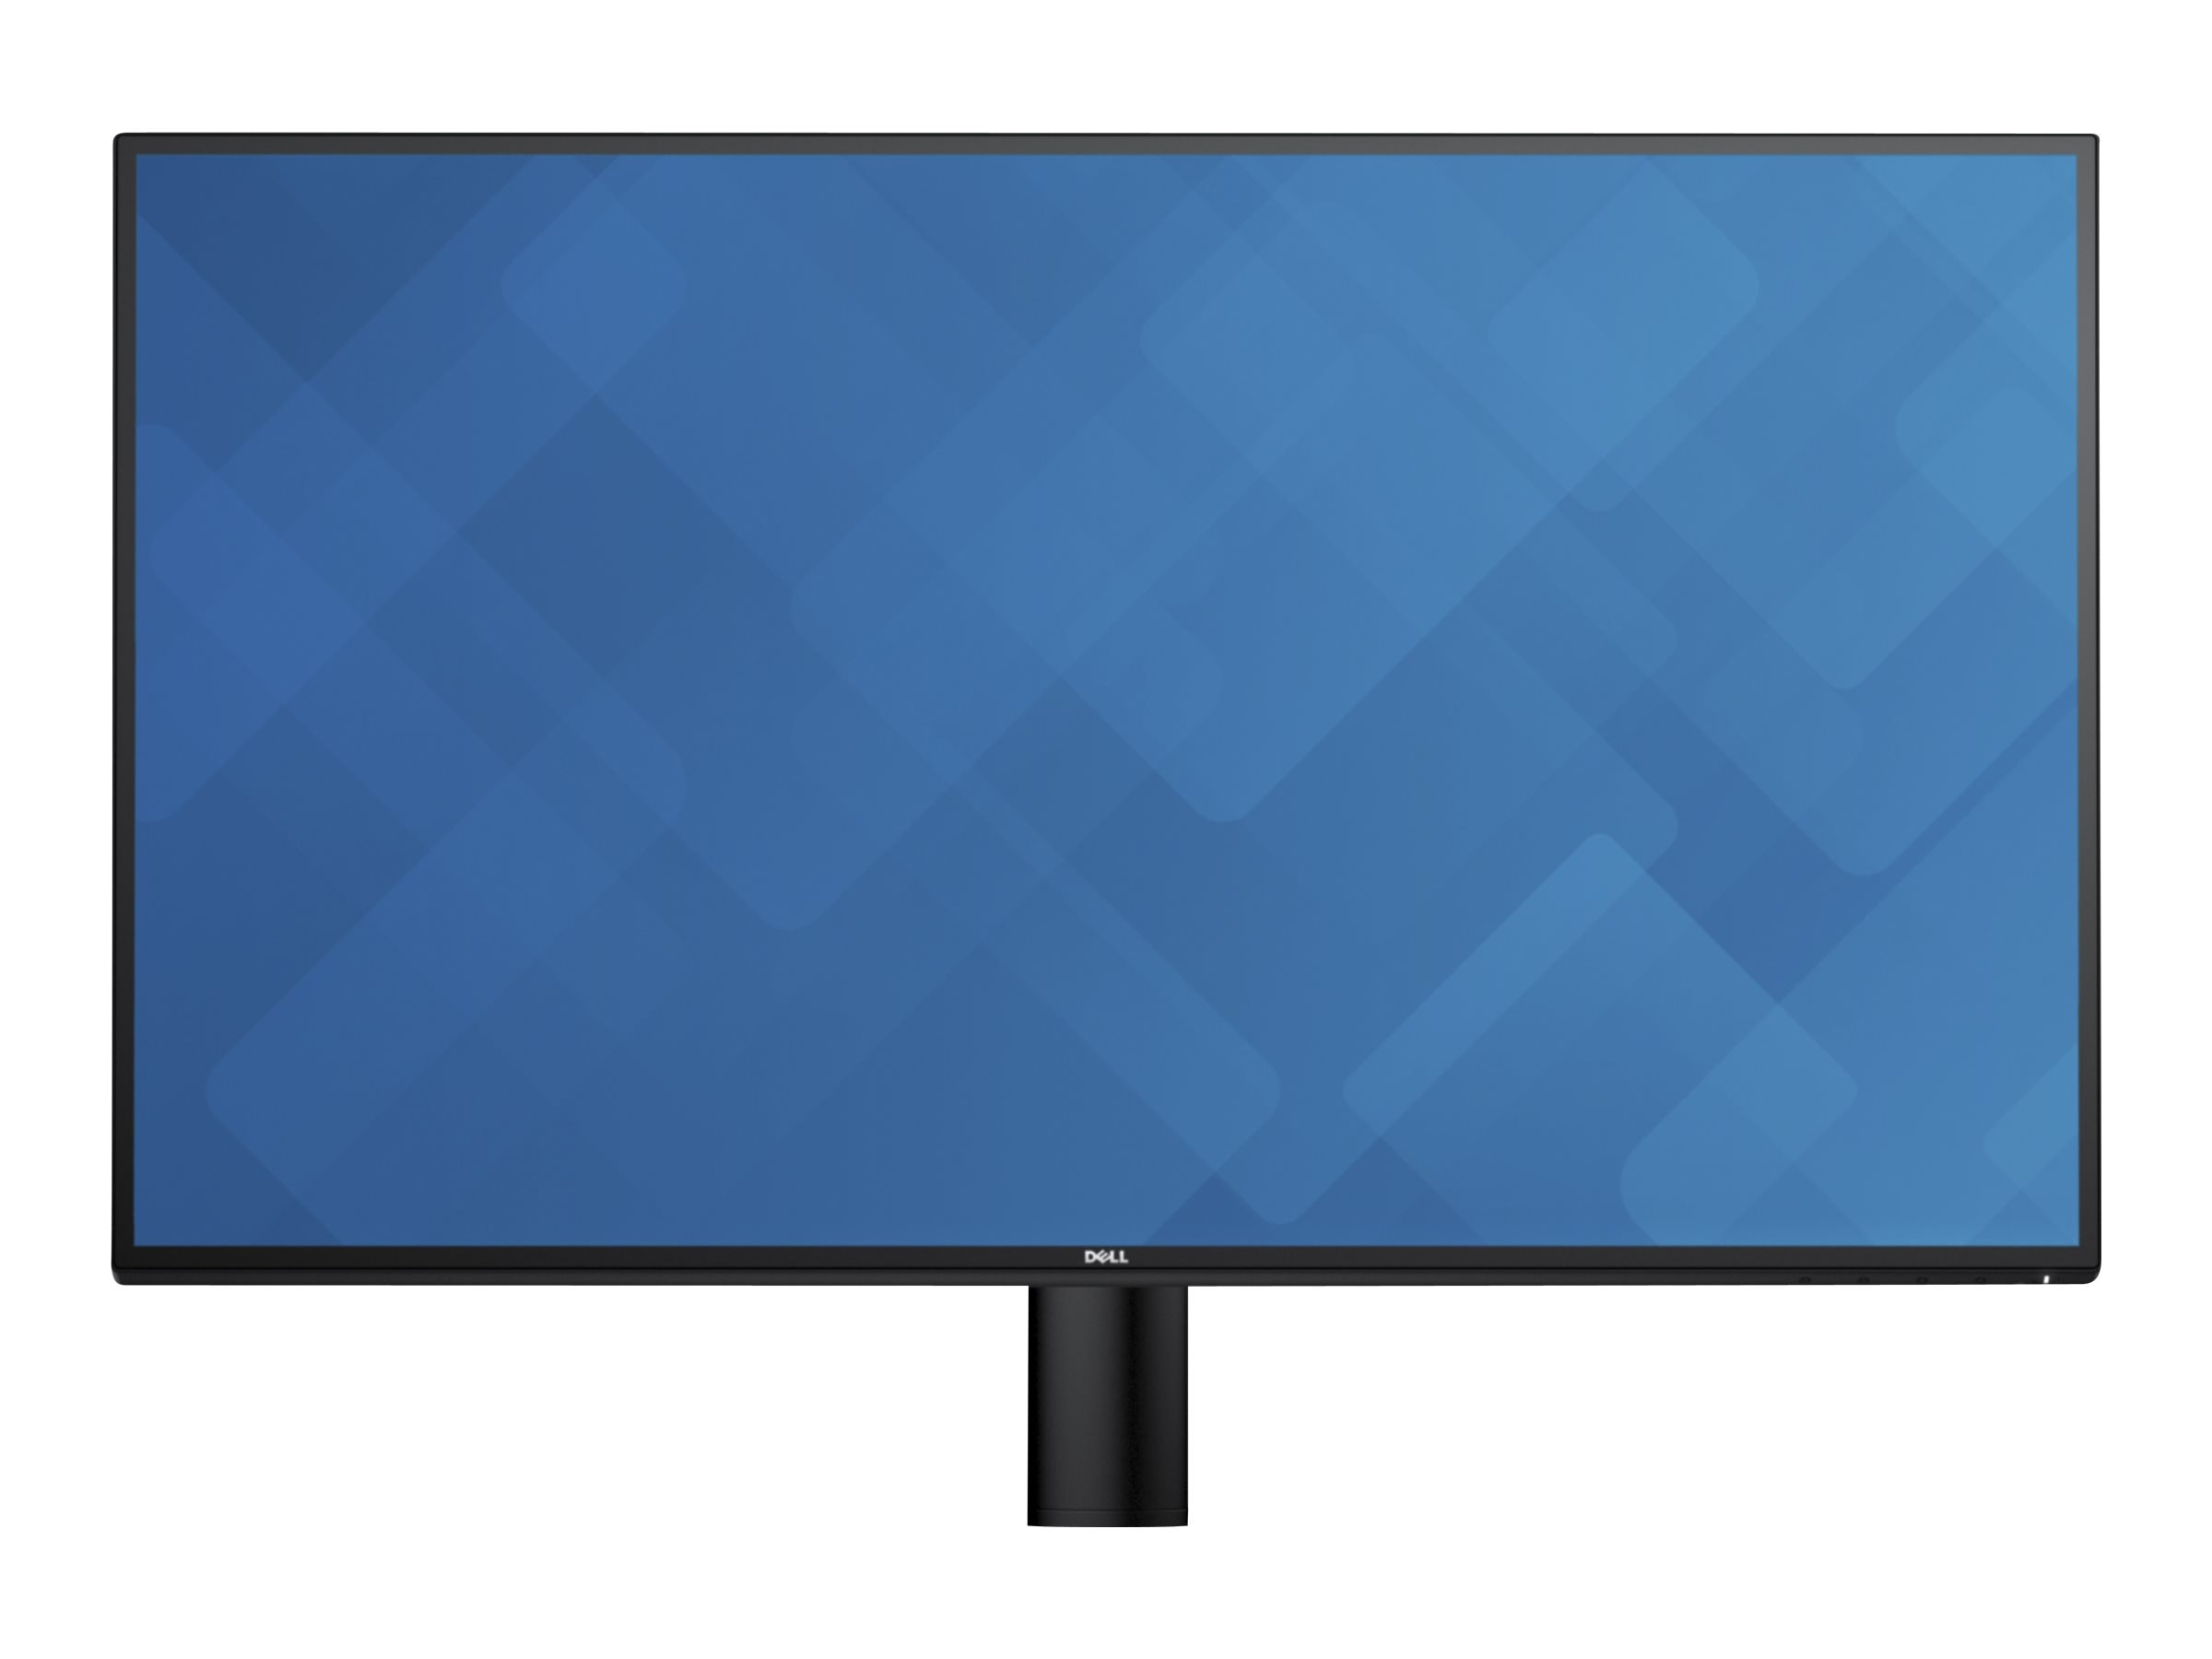 Dell 27 U2717D InfinityEdge QHD LED-LCD Monitor with Arm, Black